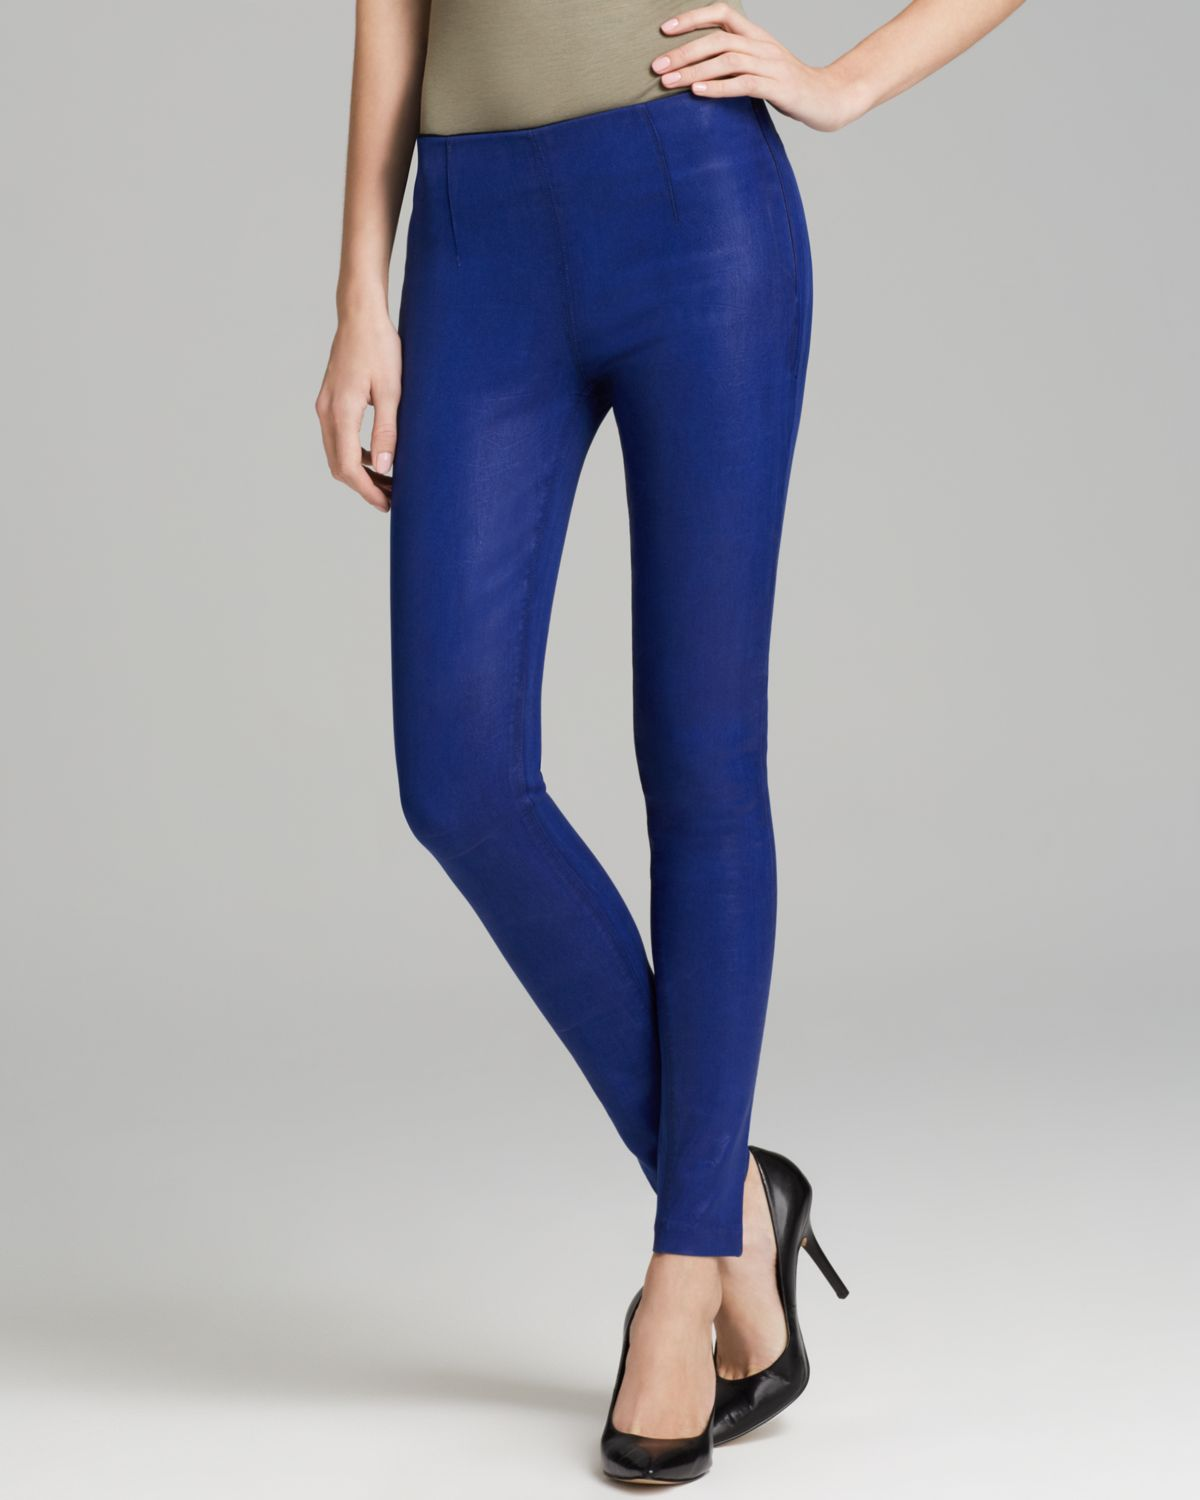 Cobalt Blue Leggings - Trendy Clothes